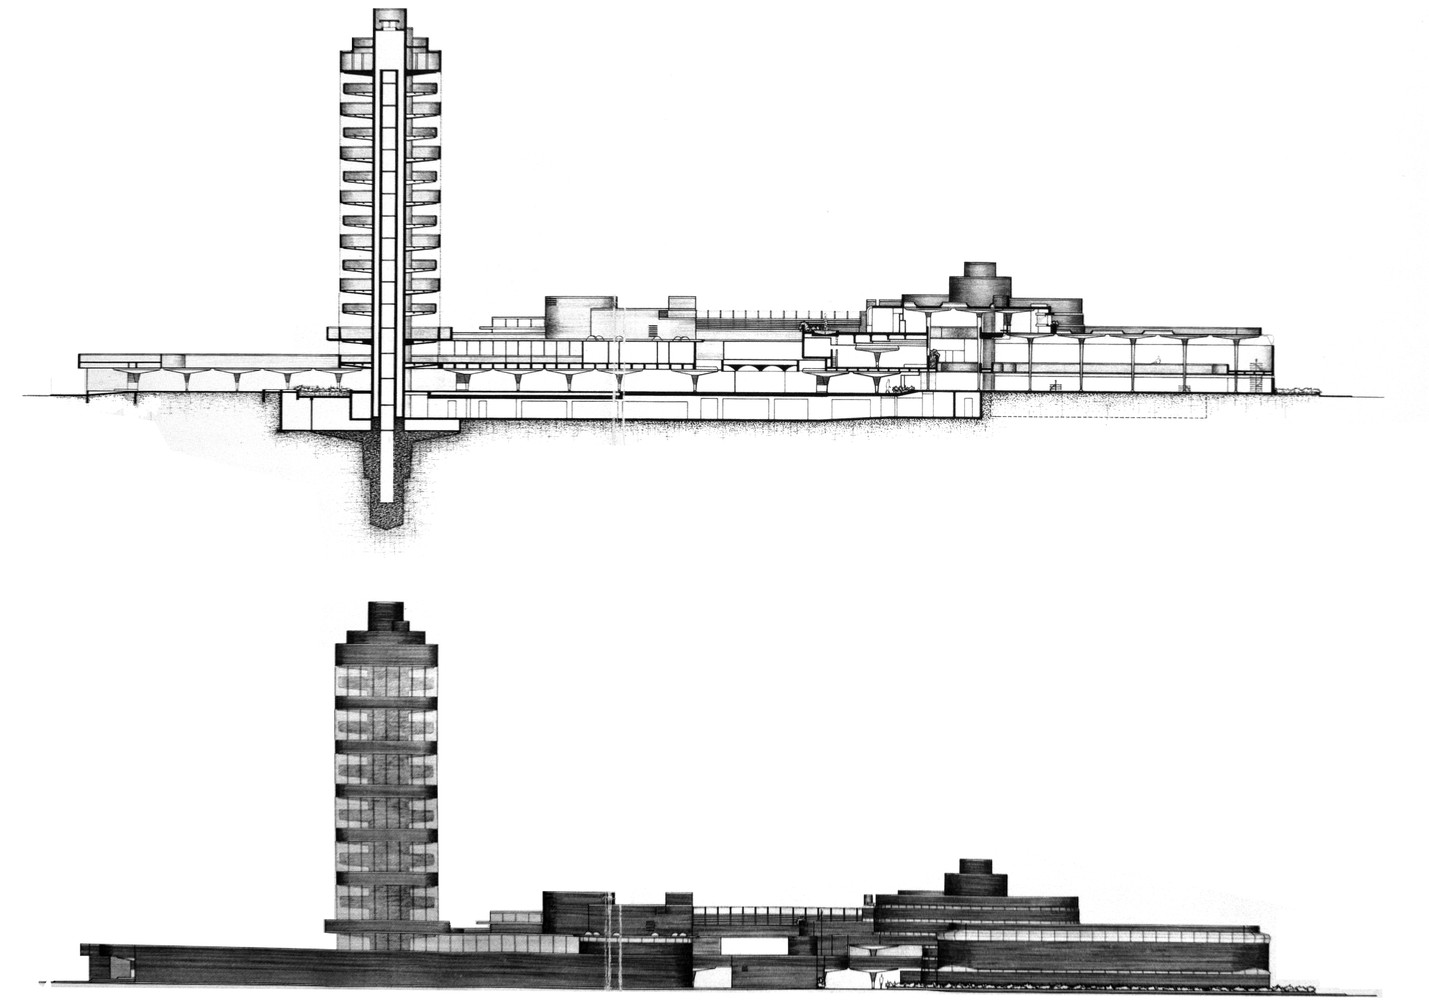 DRAWINGS - FLW_Sections.jpg